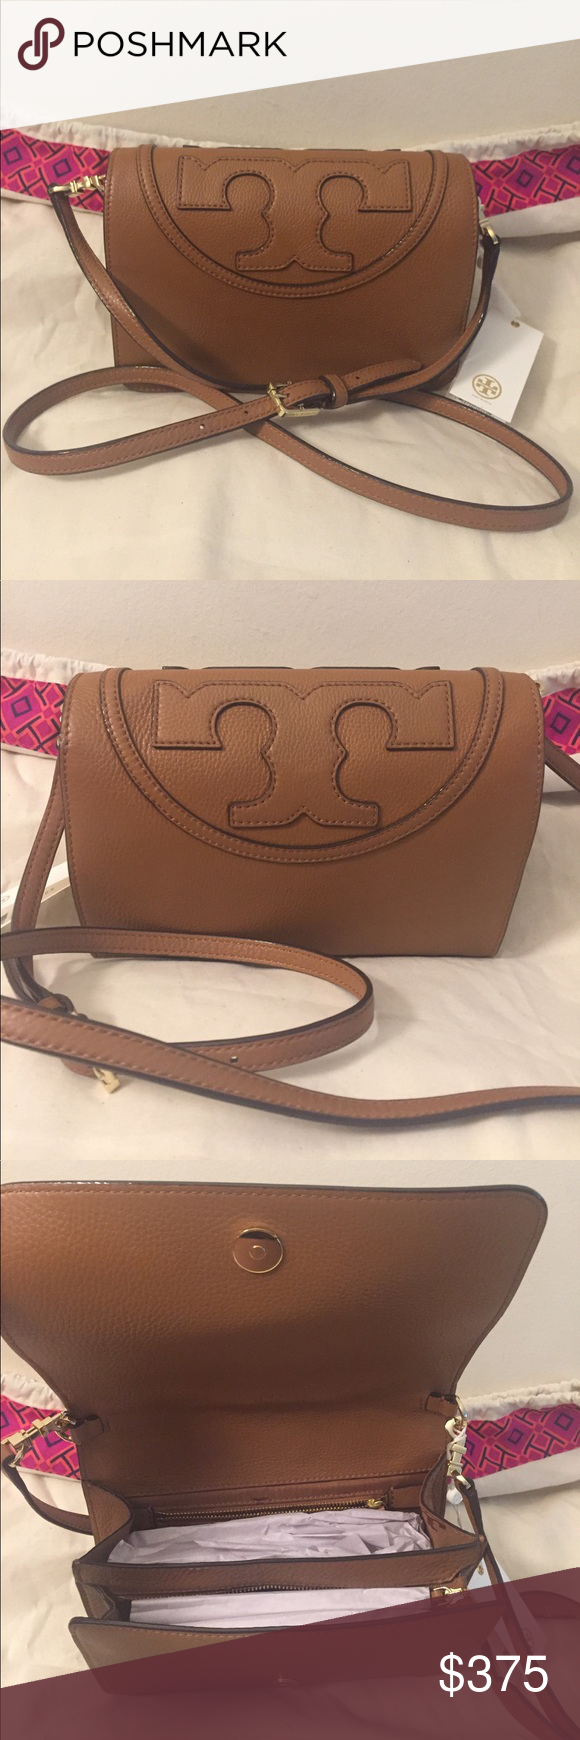 56acbf1e64b 🆕Tory Burch All T - Combo Cross-Body Color Bark💕 💯 Authentic Brand New  comes with dustbag and also shopping bag!!!💕 Price Firm...Out of Stock!!!  Tory ...